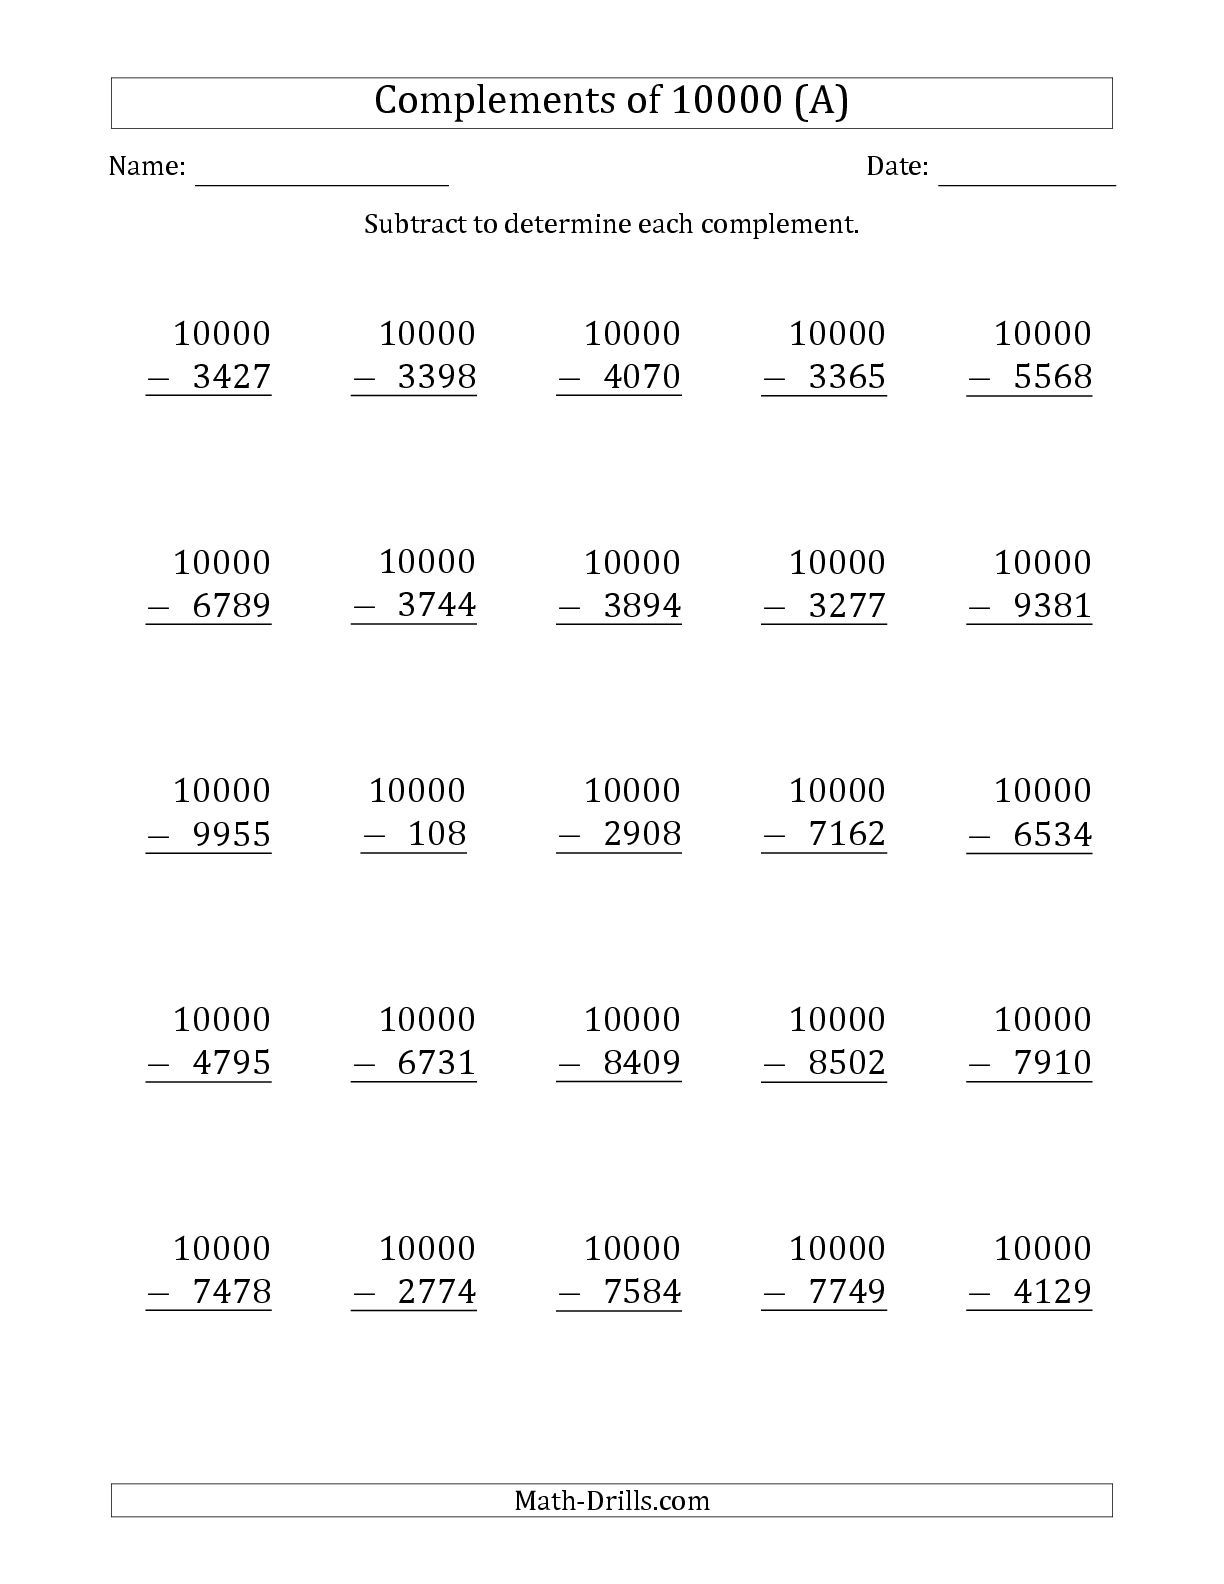 worksheet Complements Of 10 Worksheets the complements 10000 by subtracting a math worksheet from subtraction page at